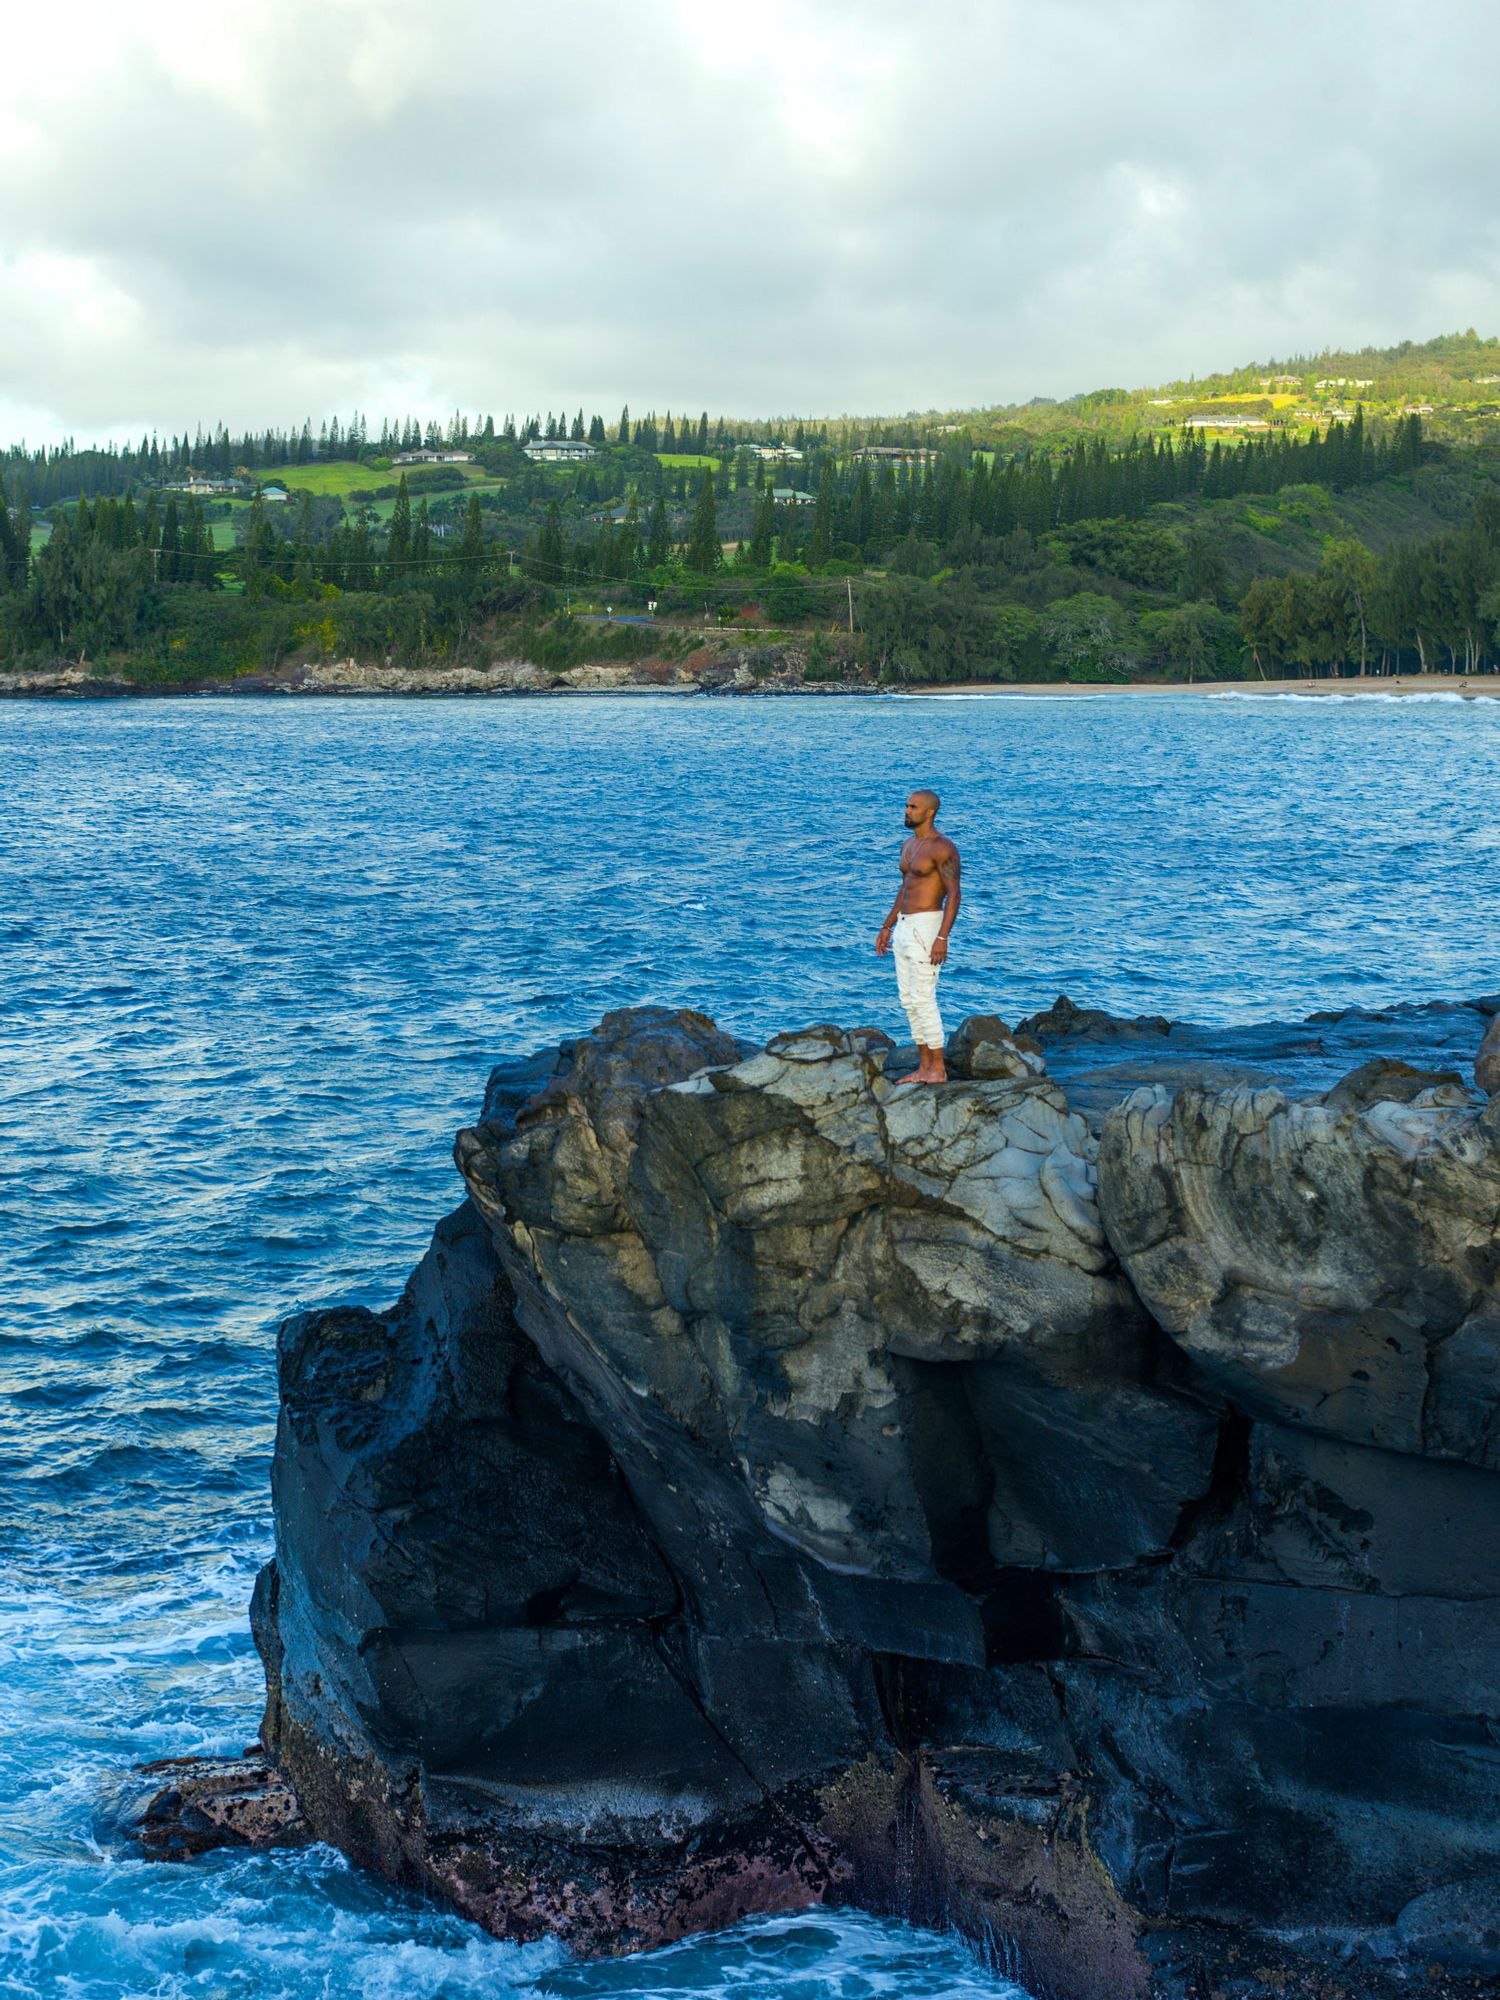 Shemar Moore standing on rocky terrain by the ocean with his shirt off and in white pants